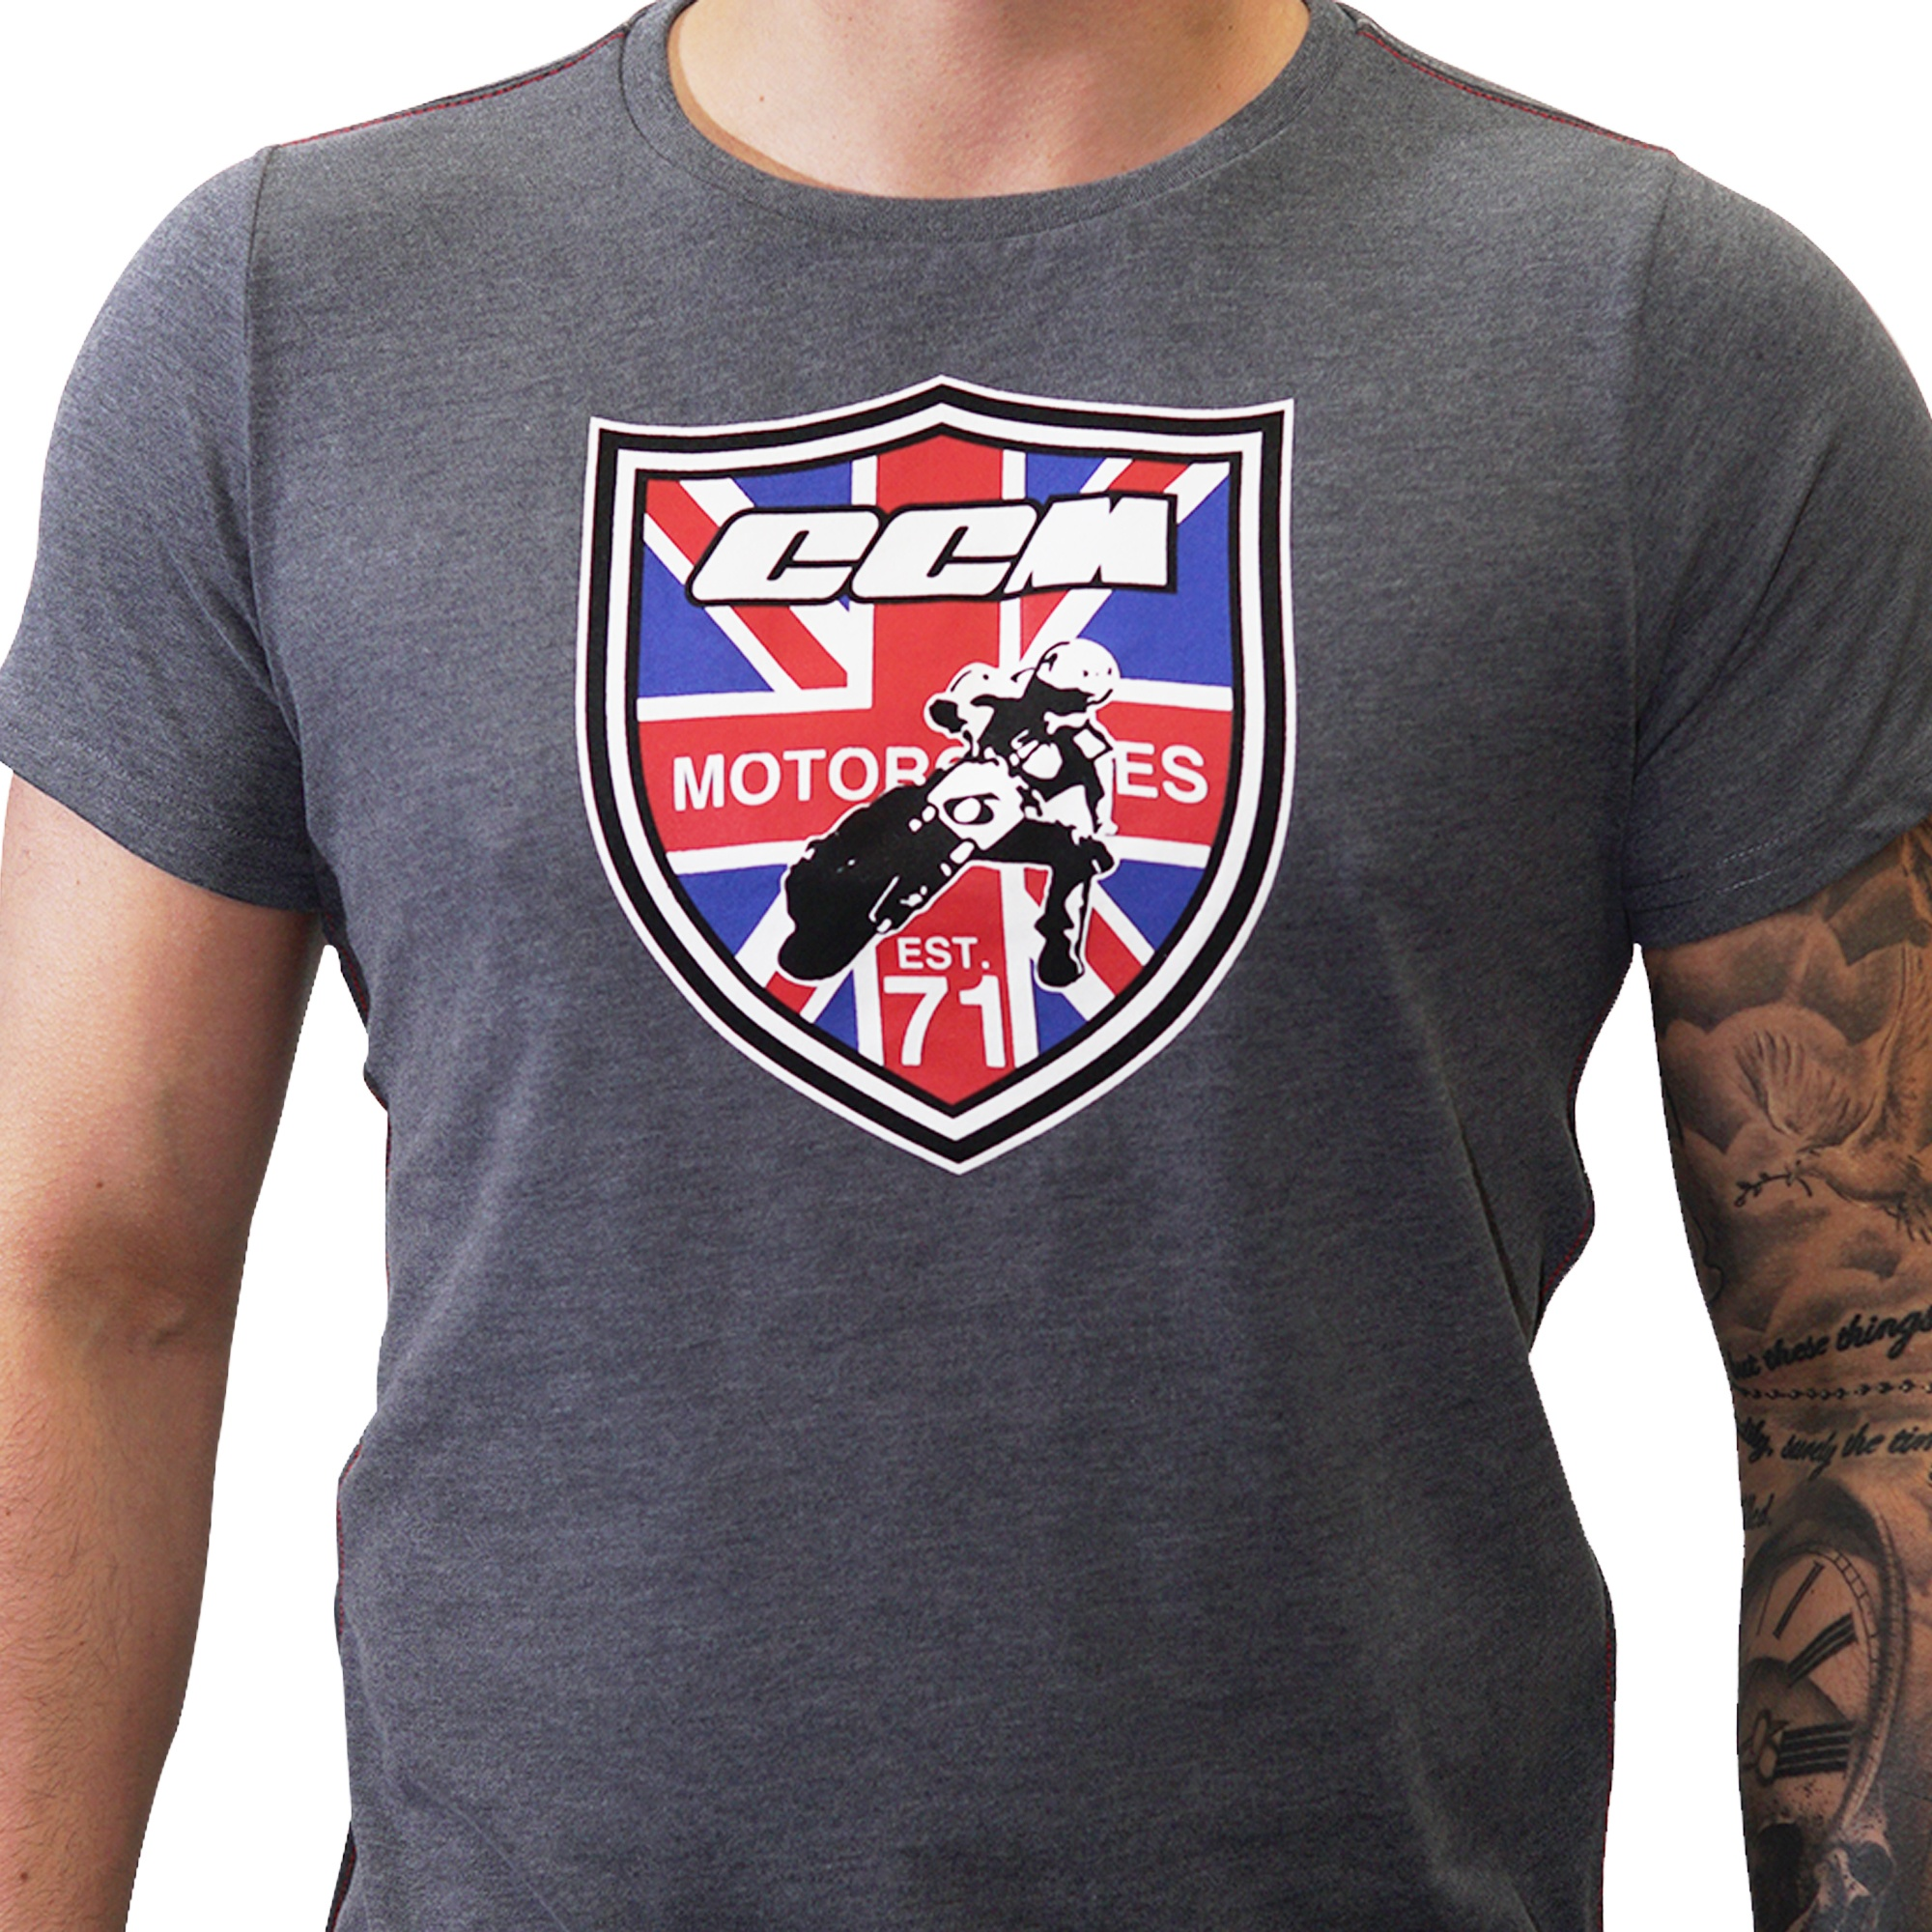 CCM Motorcycles   Official CCM Union Jack Marco Belli Crew Neck Tee ...